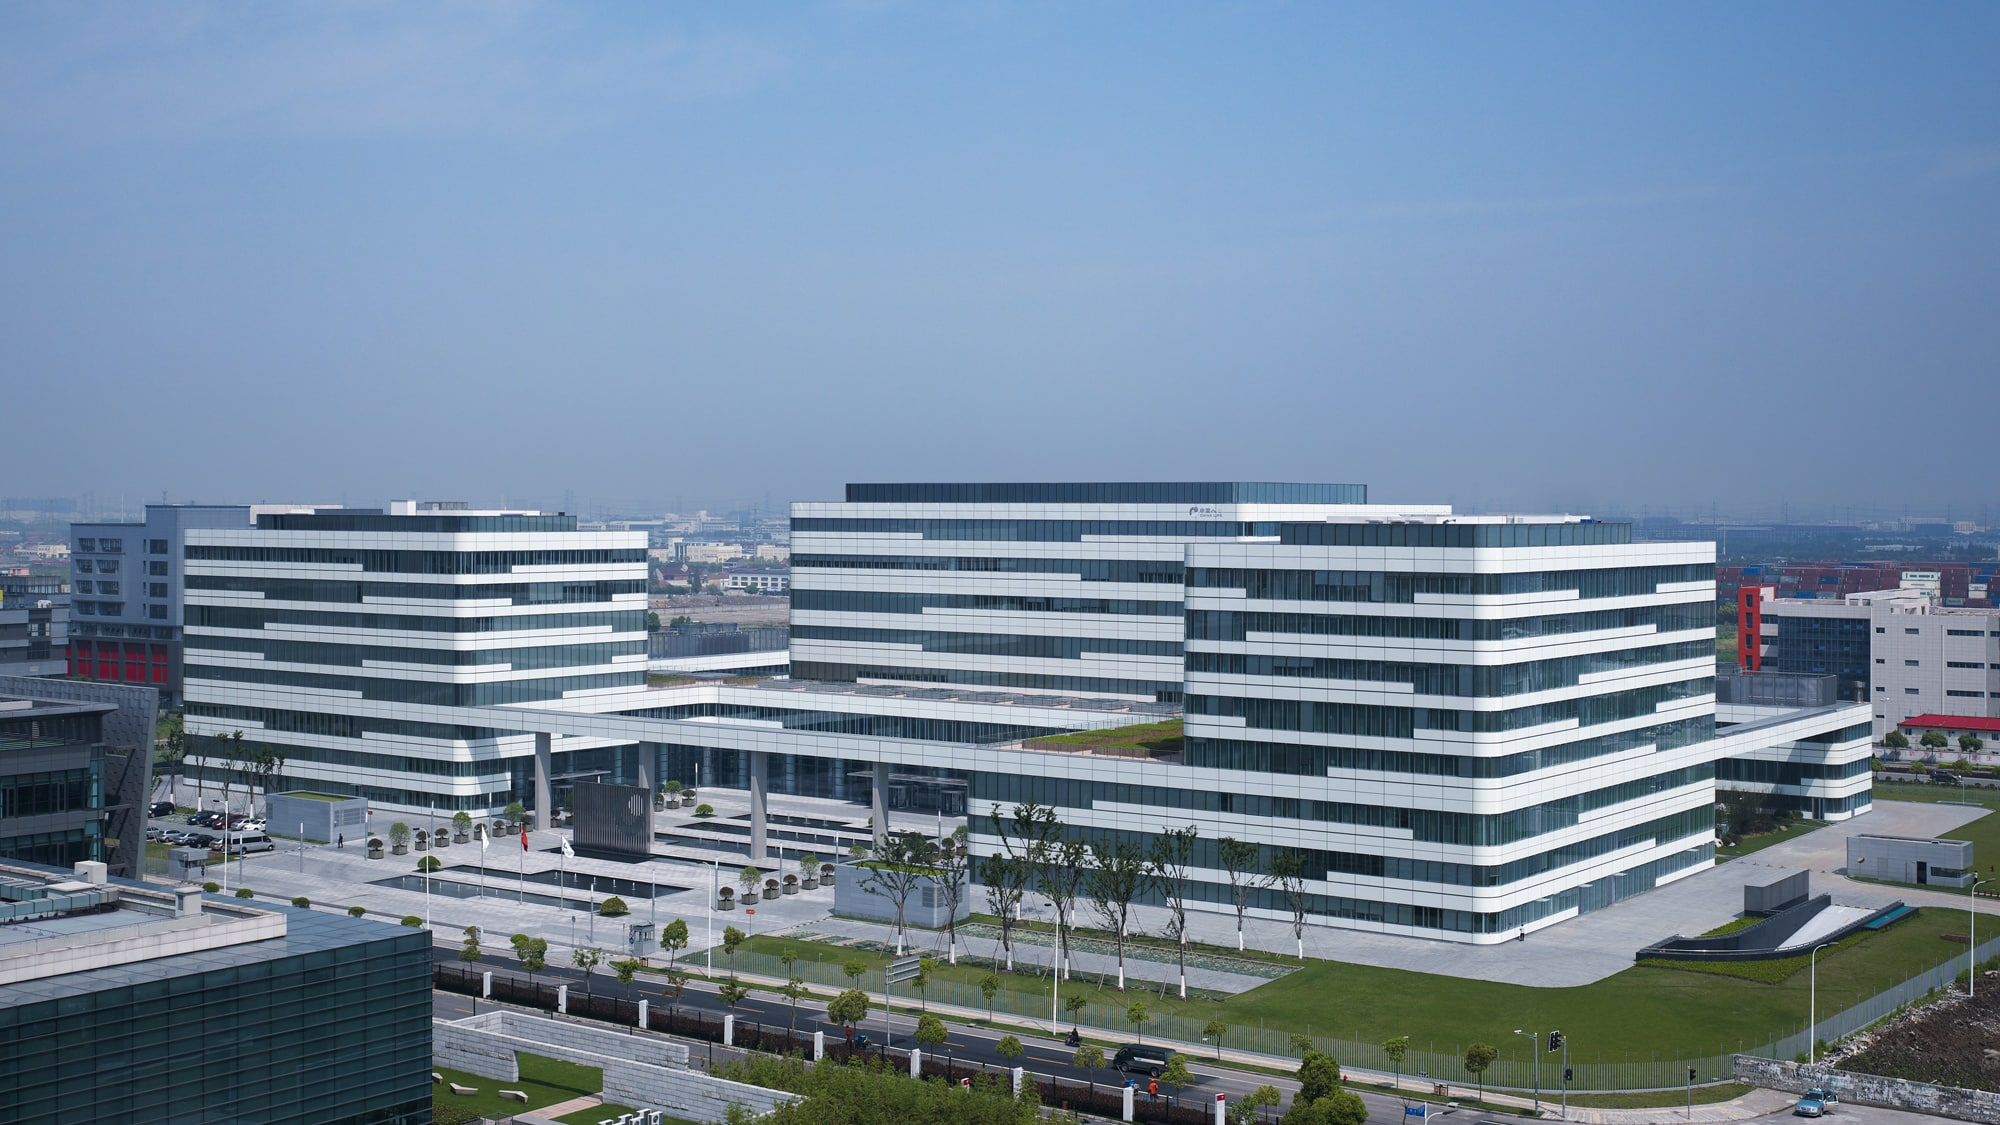 R&D EU backed projects: Advisory services in area of China market expansion RFP